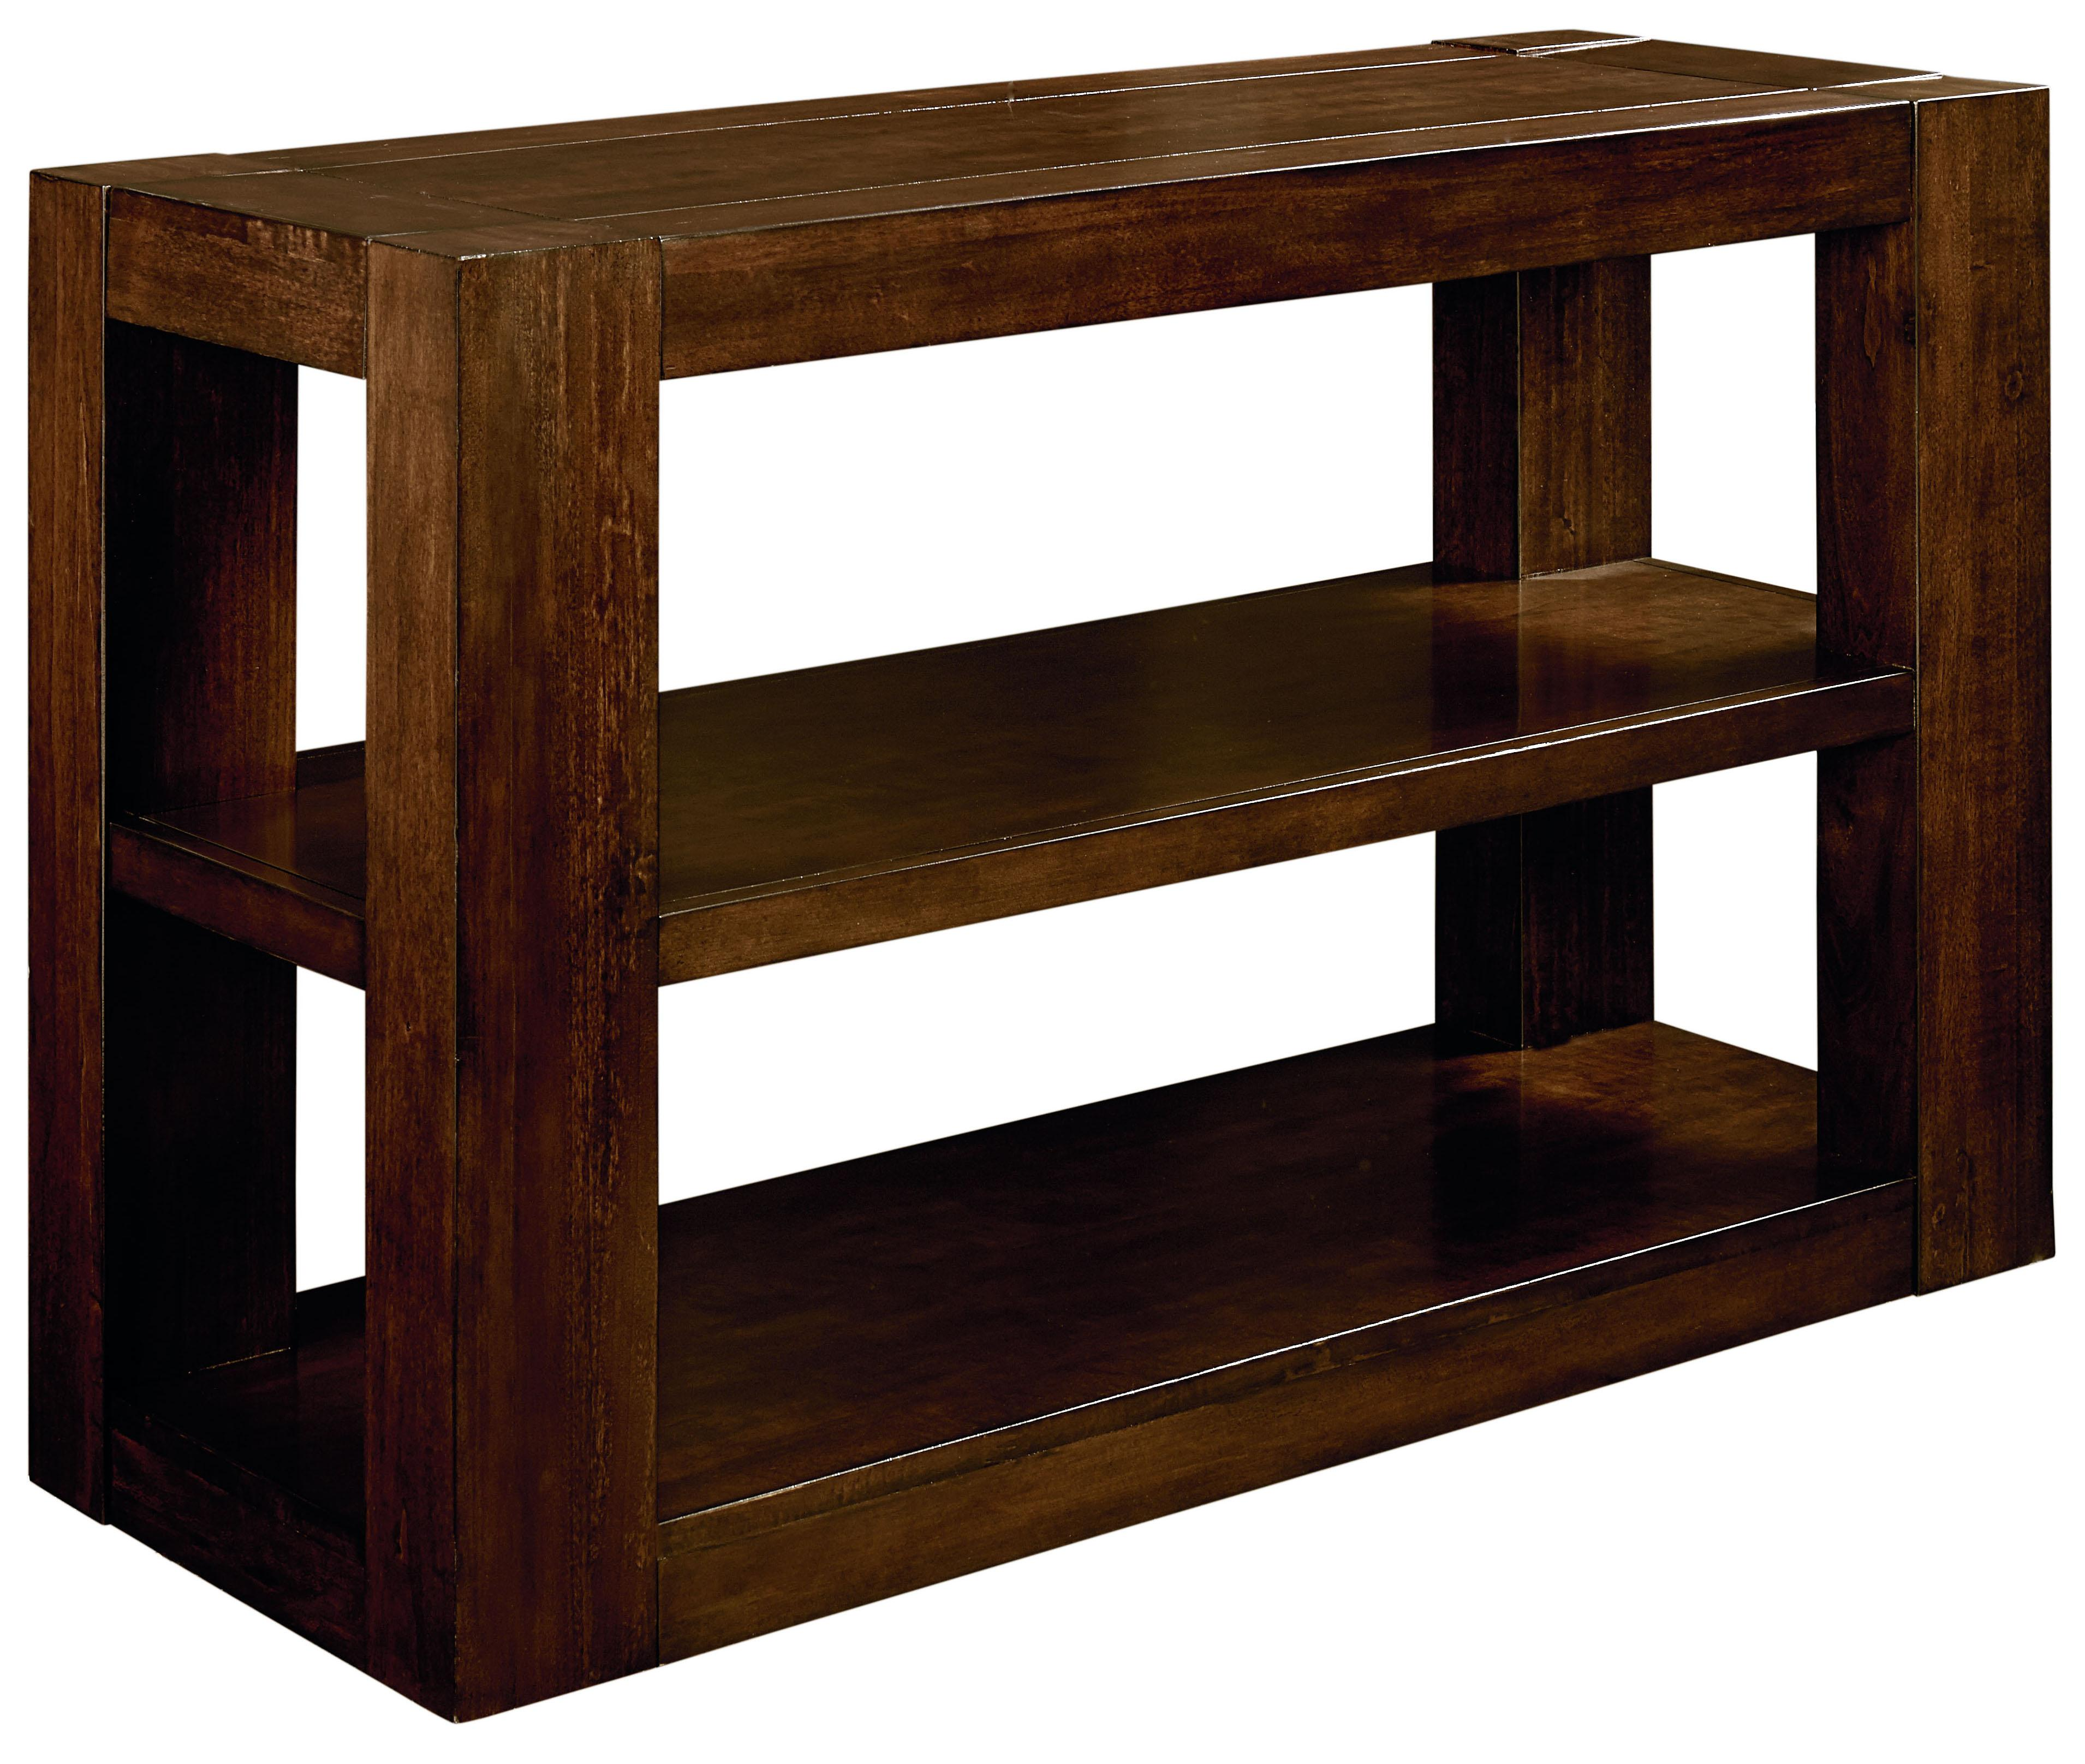 Standard Furniture Franklin Console Table - Item Number: 29366